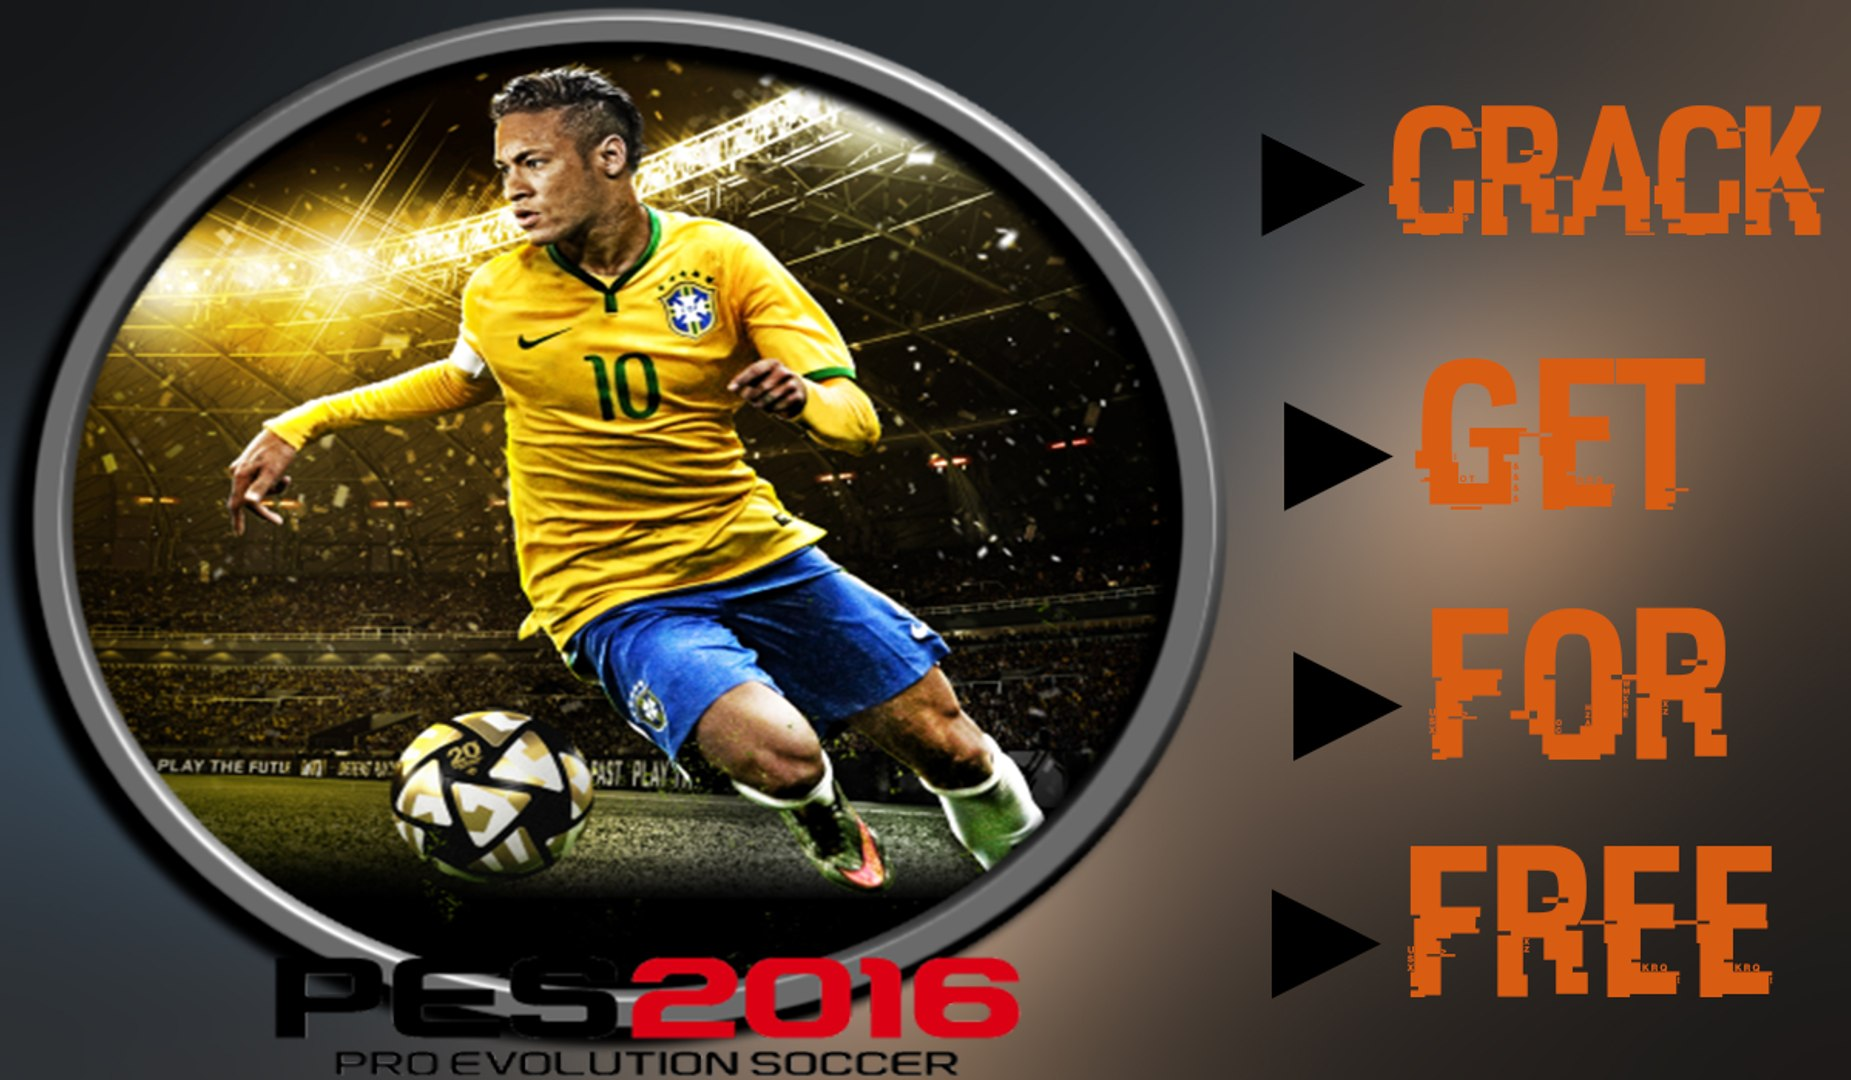 Downloard and install PES 2016 - Pro Evolution Soccer 2016 (v1  + DLC,  MULTI17) for FREE on PC